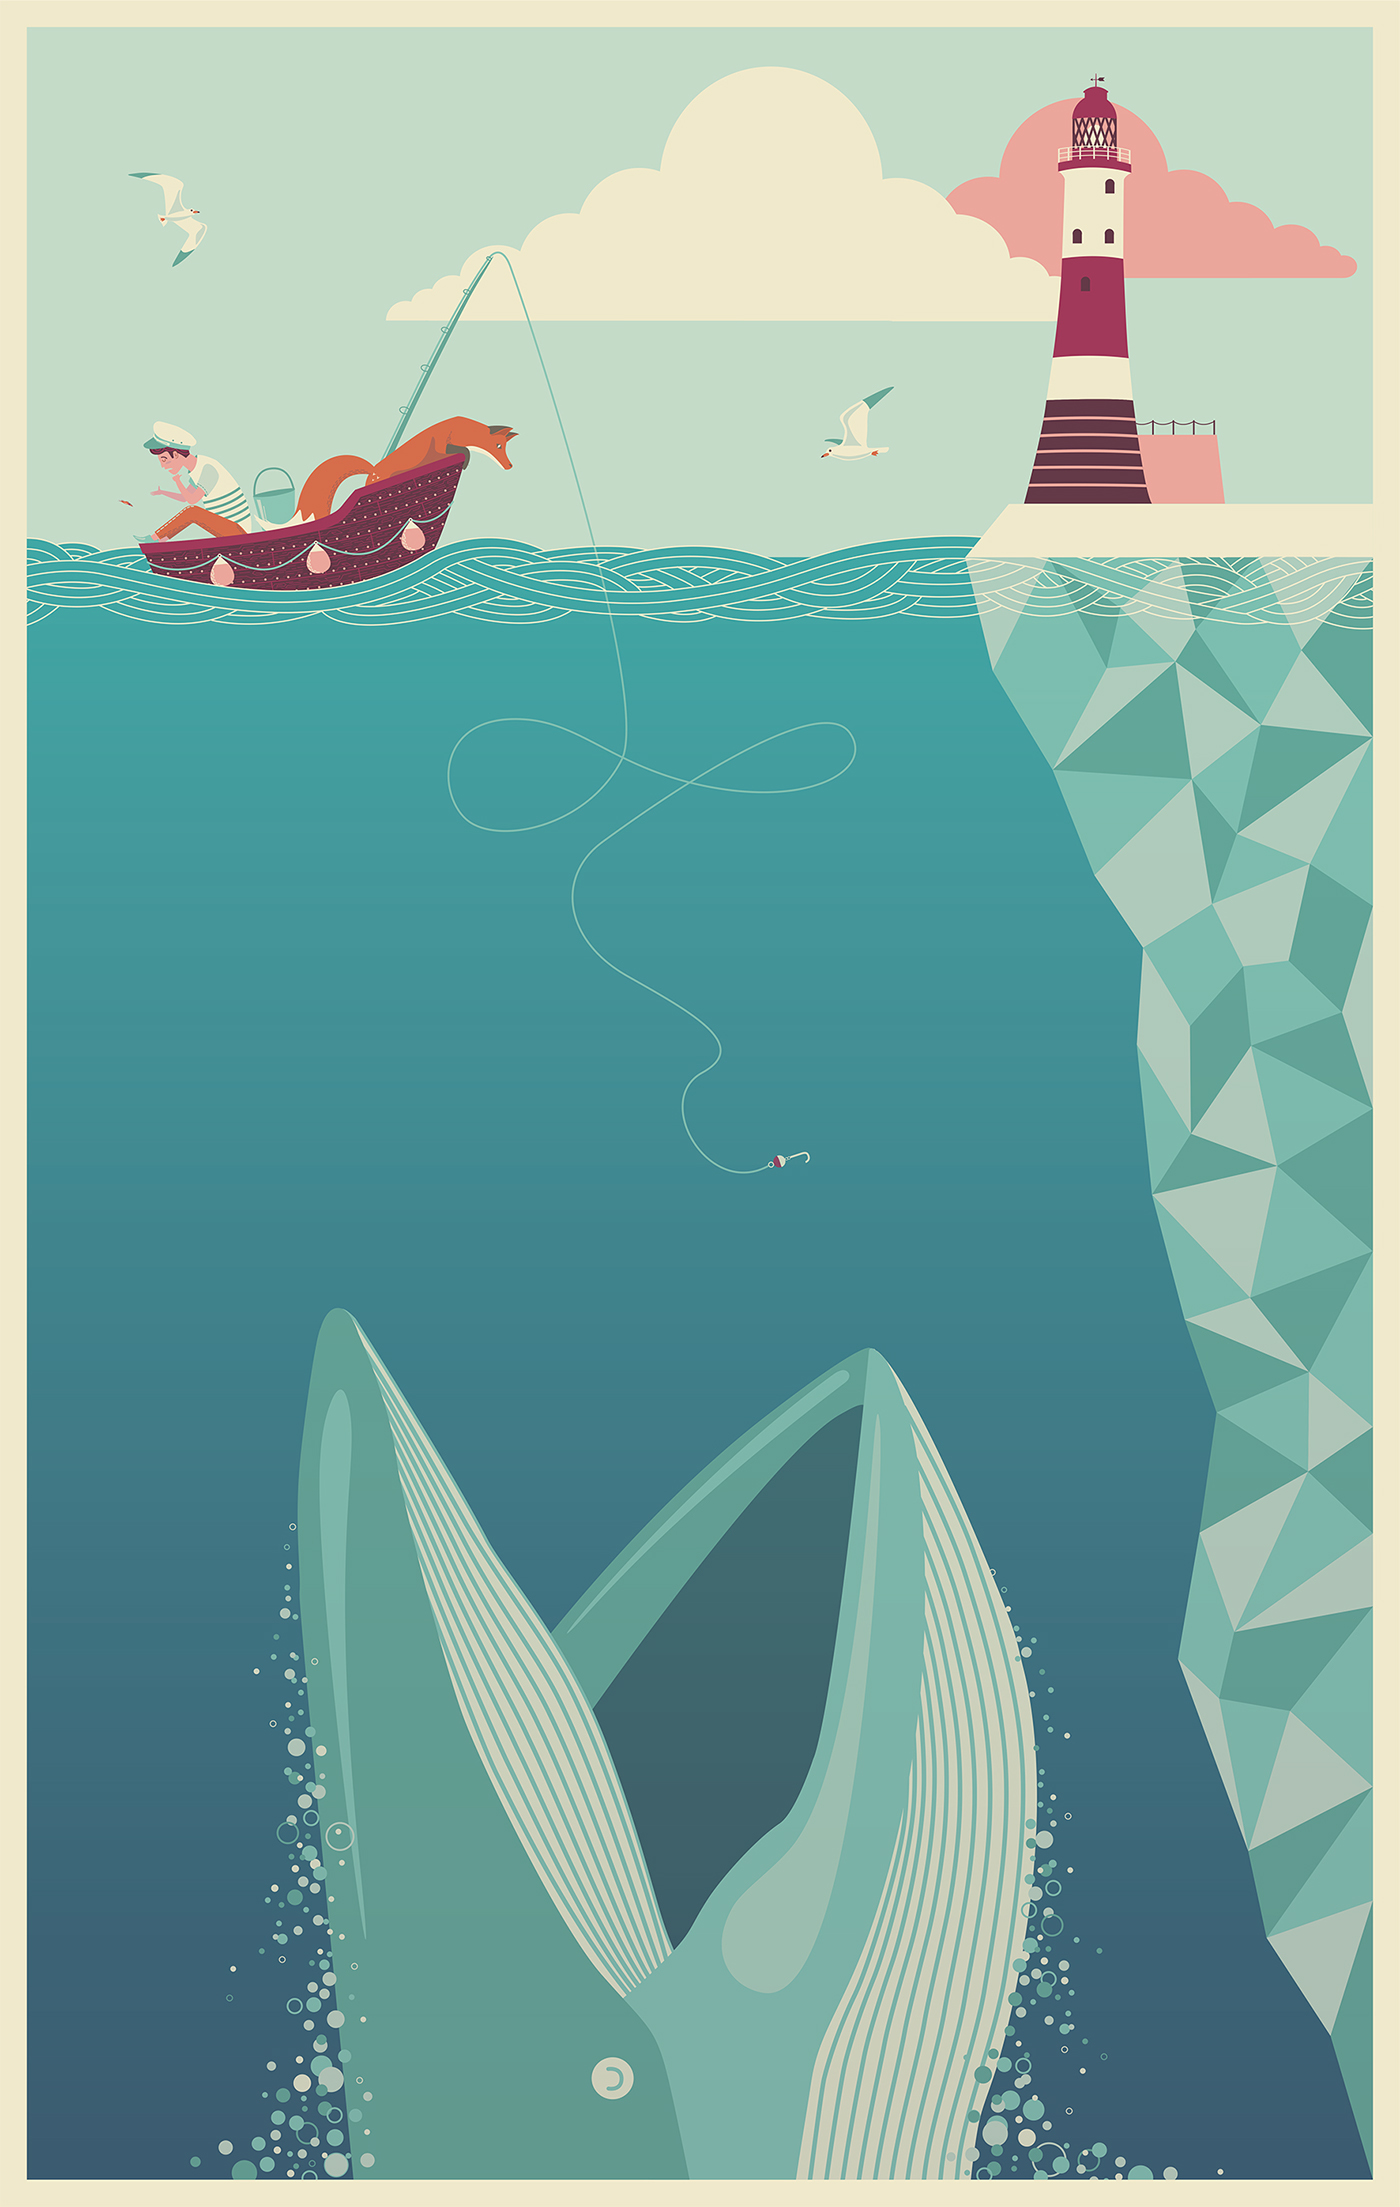 The Fear of Drowning on Behance